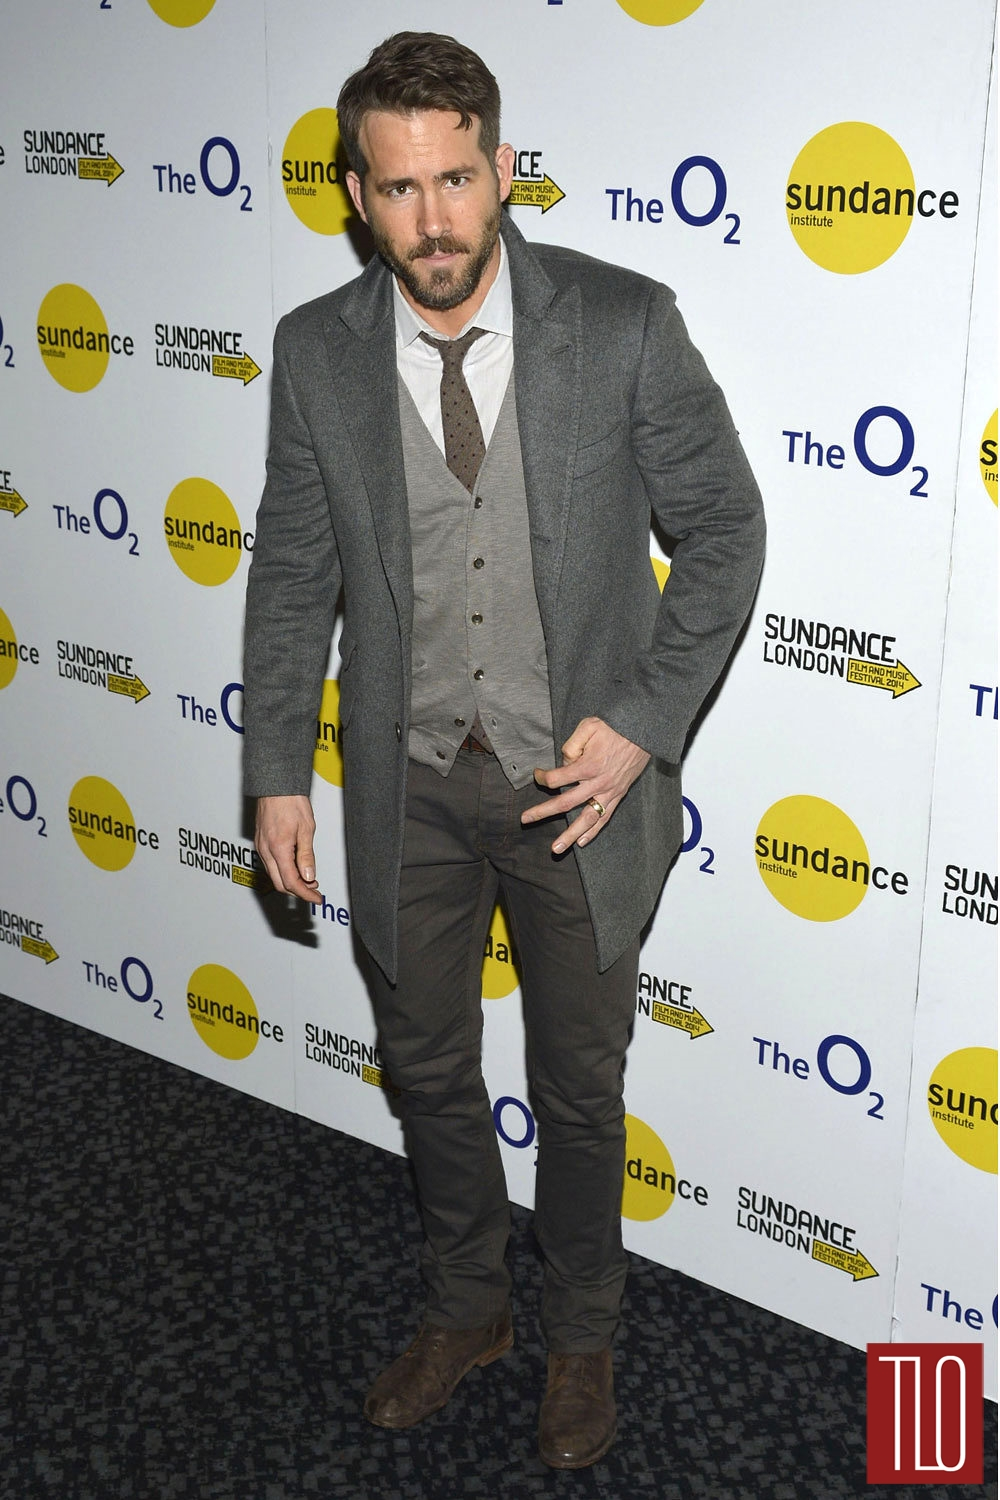 Ryan-Reynolds-The-Voices-London-Sundance-Screening-Tom-Lorenzo-Site-TLO (1)